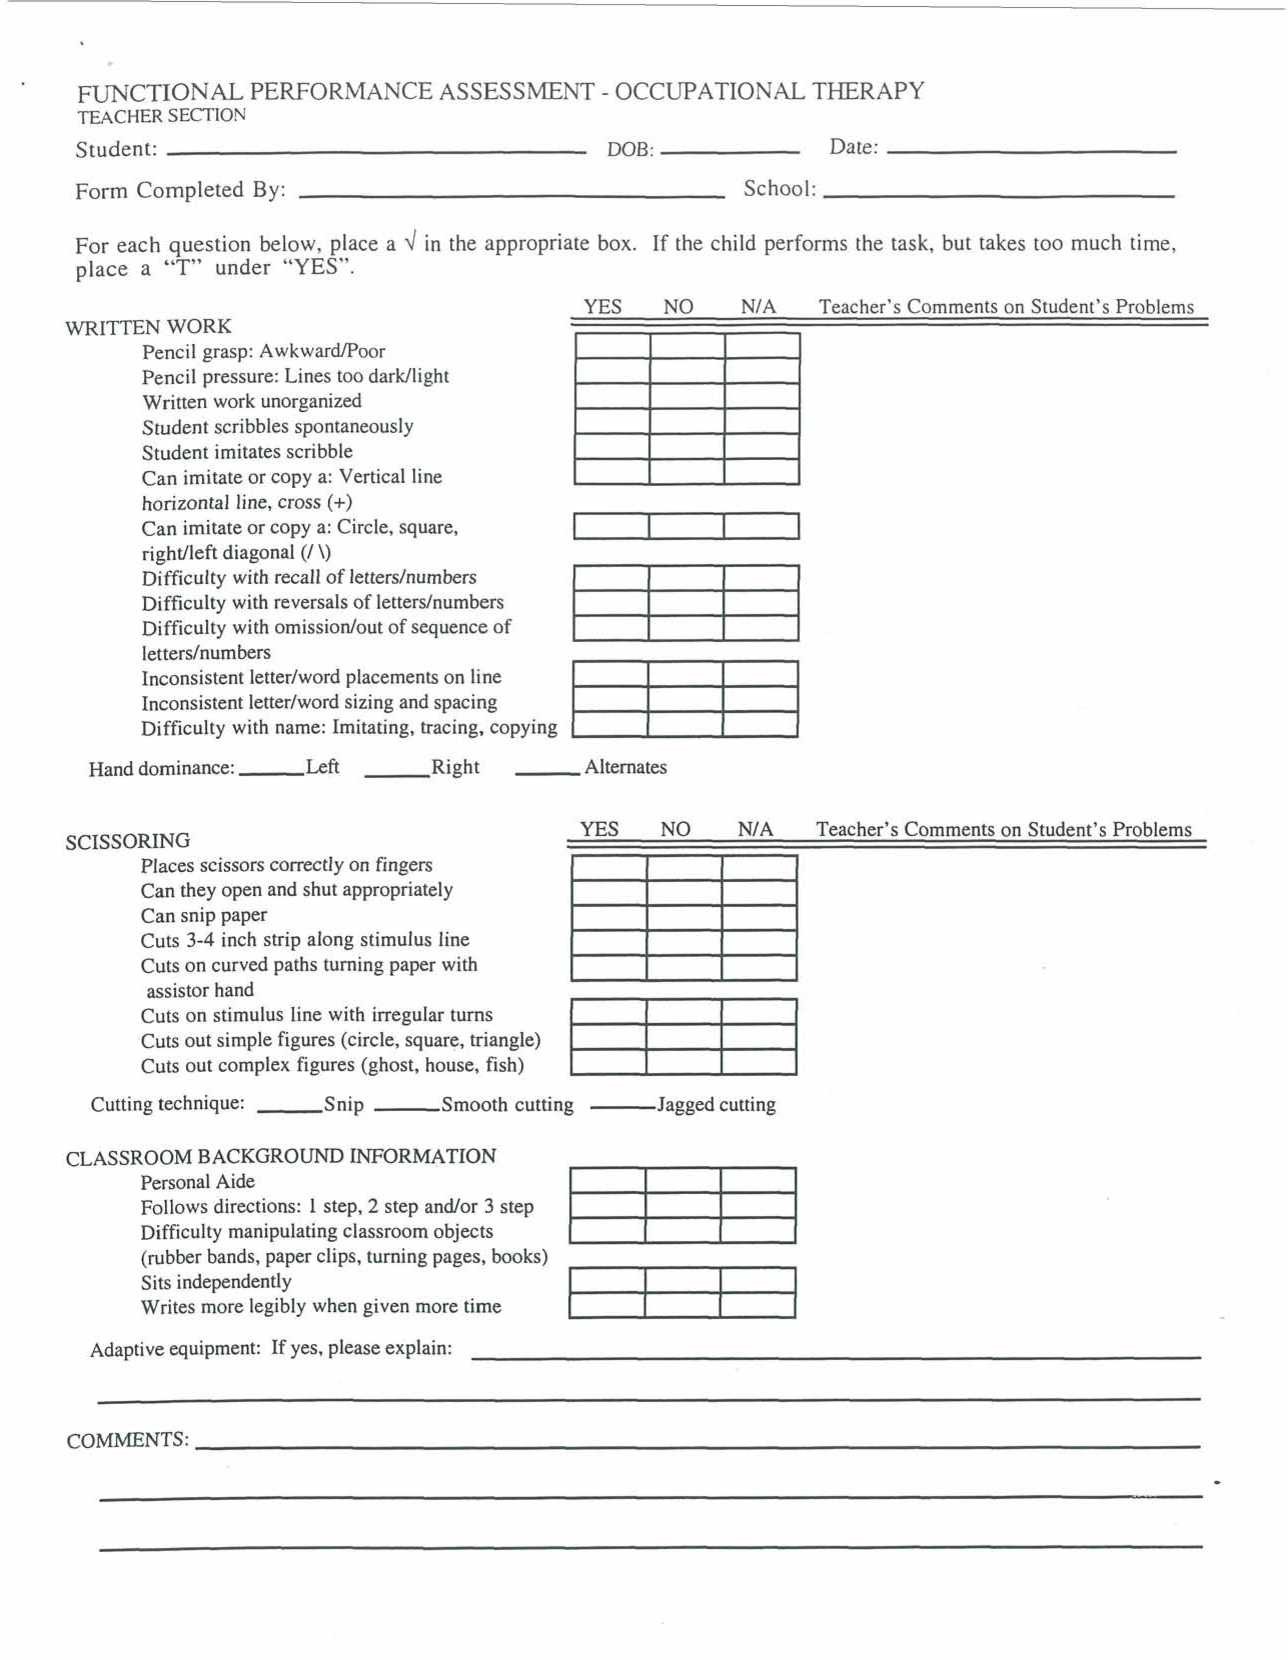 tenncare occupational therapy templates you need to enable tenncare occupational therapy templates functional performance assessment occupational therapy